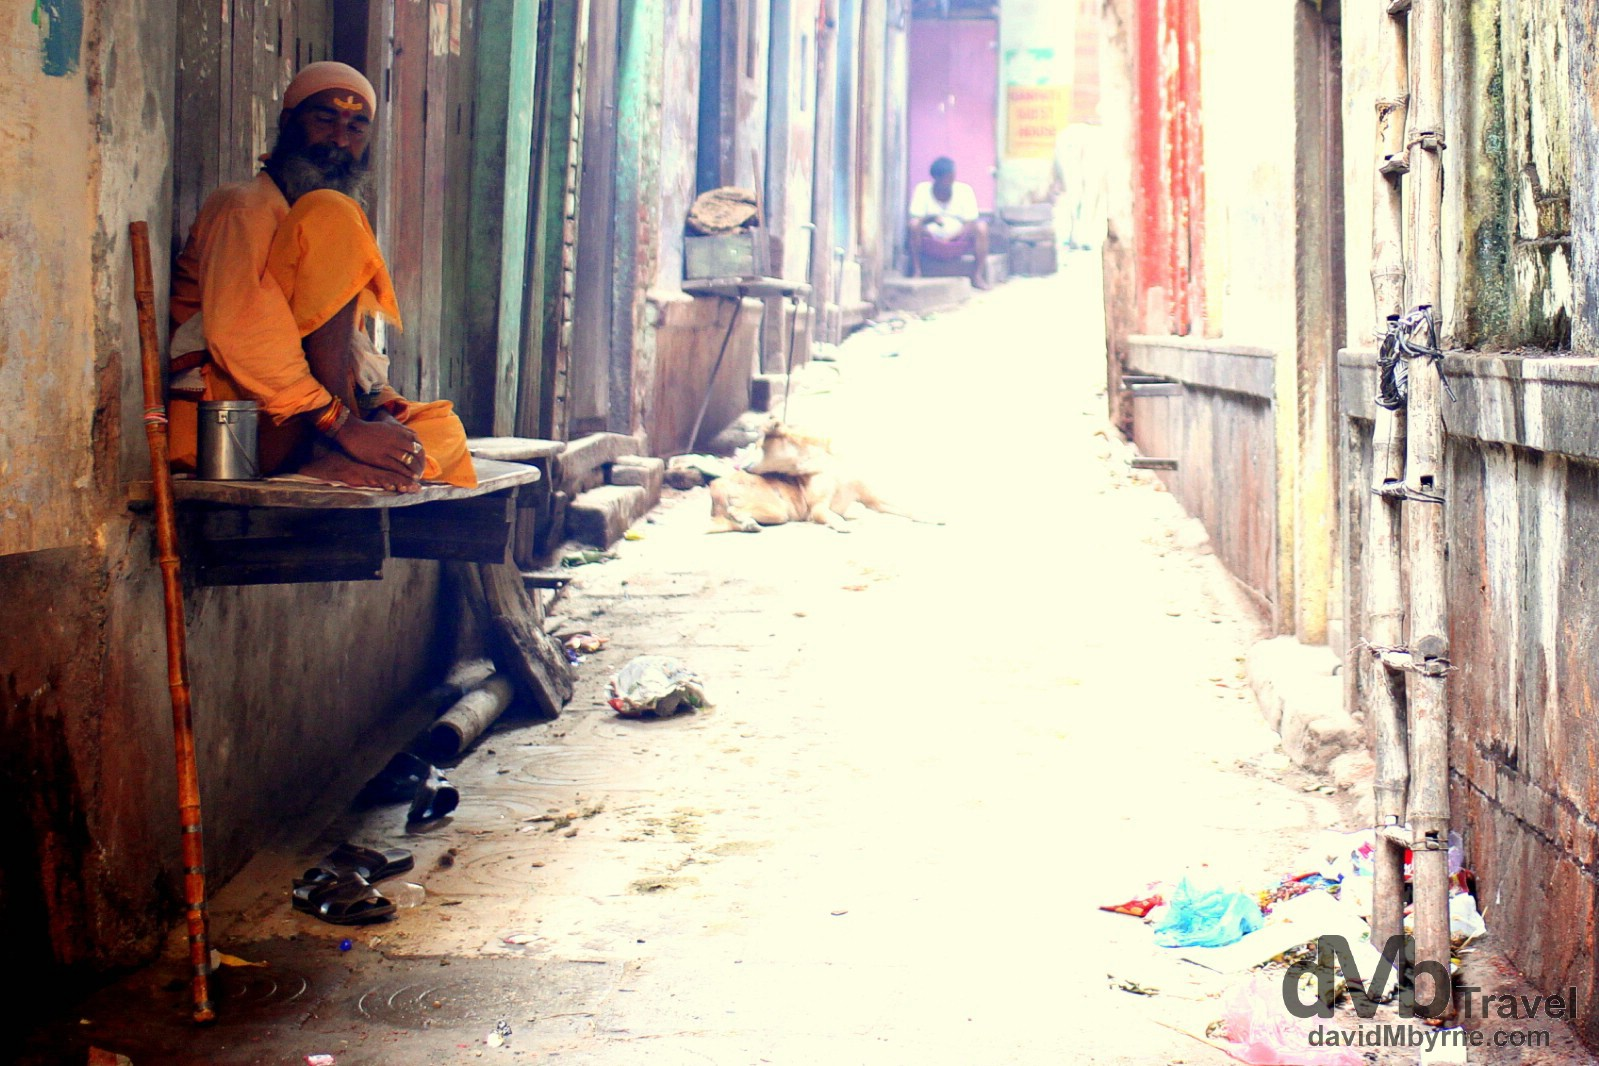 A sadhu sitting in a lane in the Old City of Varanasi, Uttar Pradesh, India. October 14th 2012.